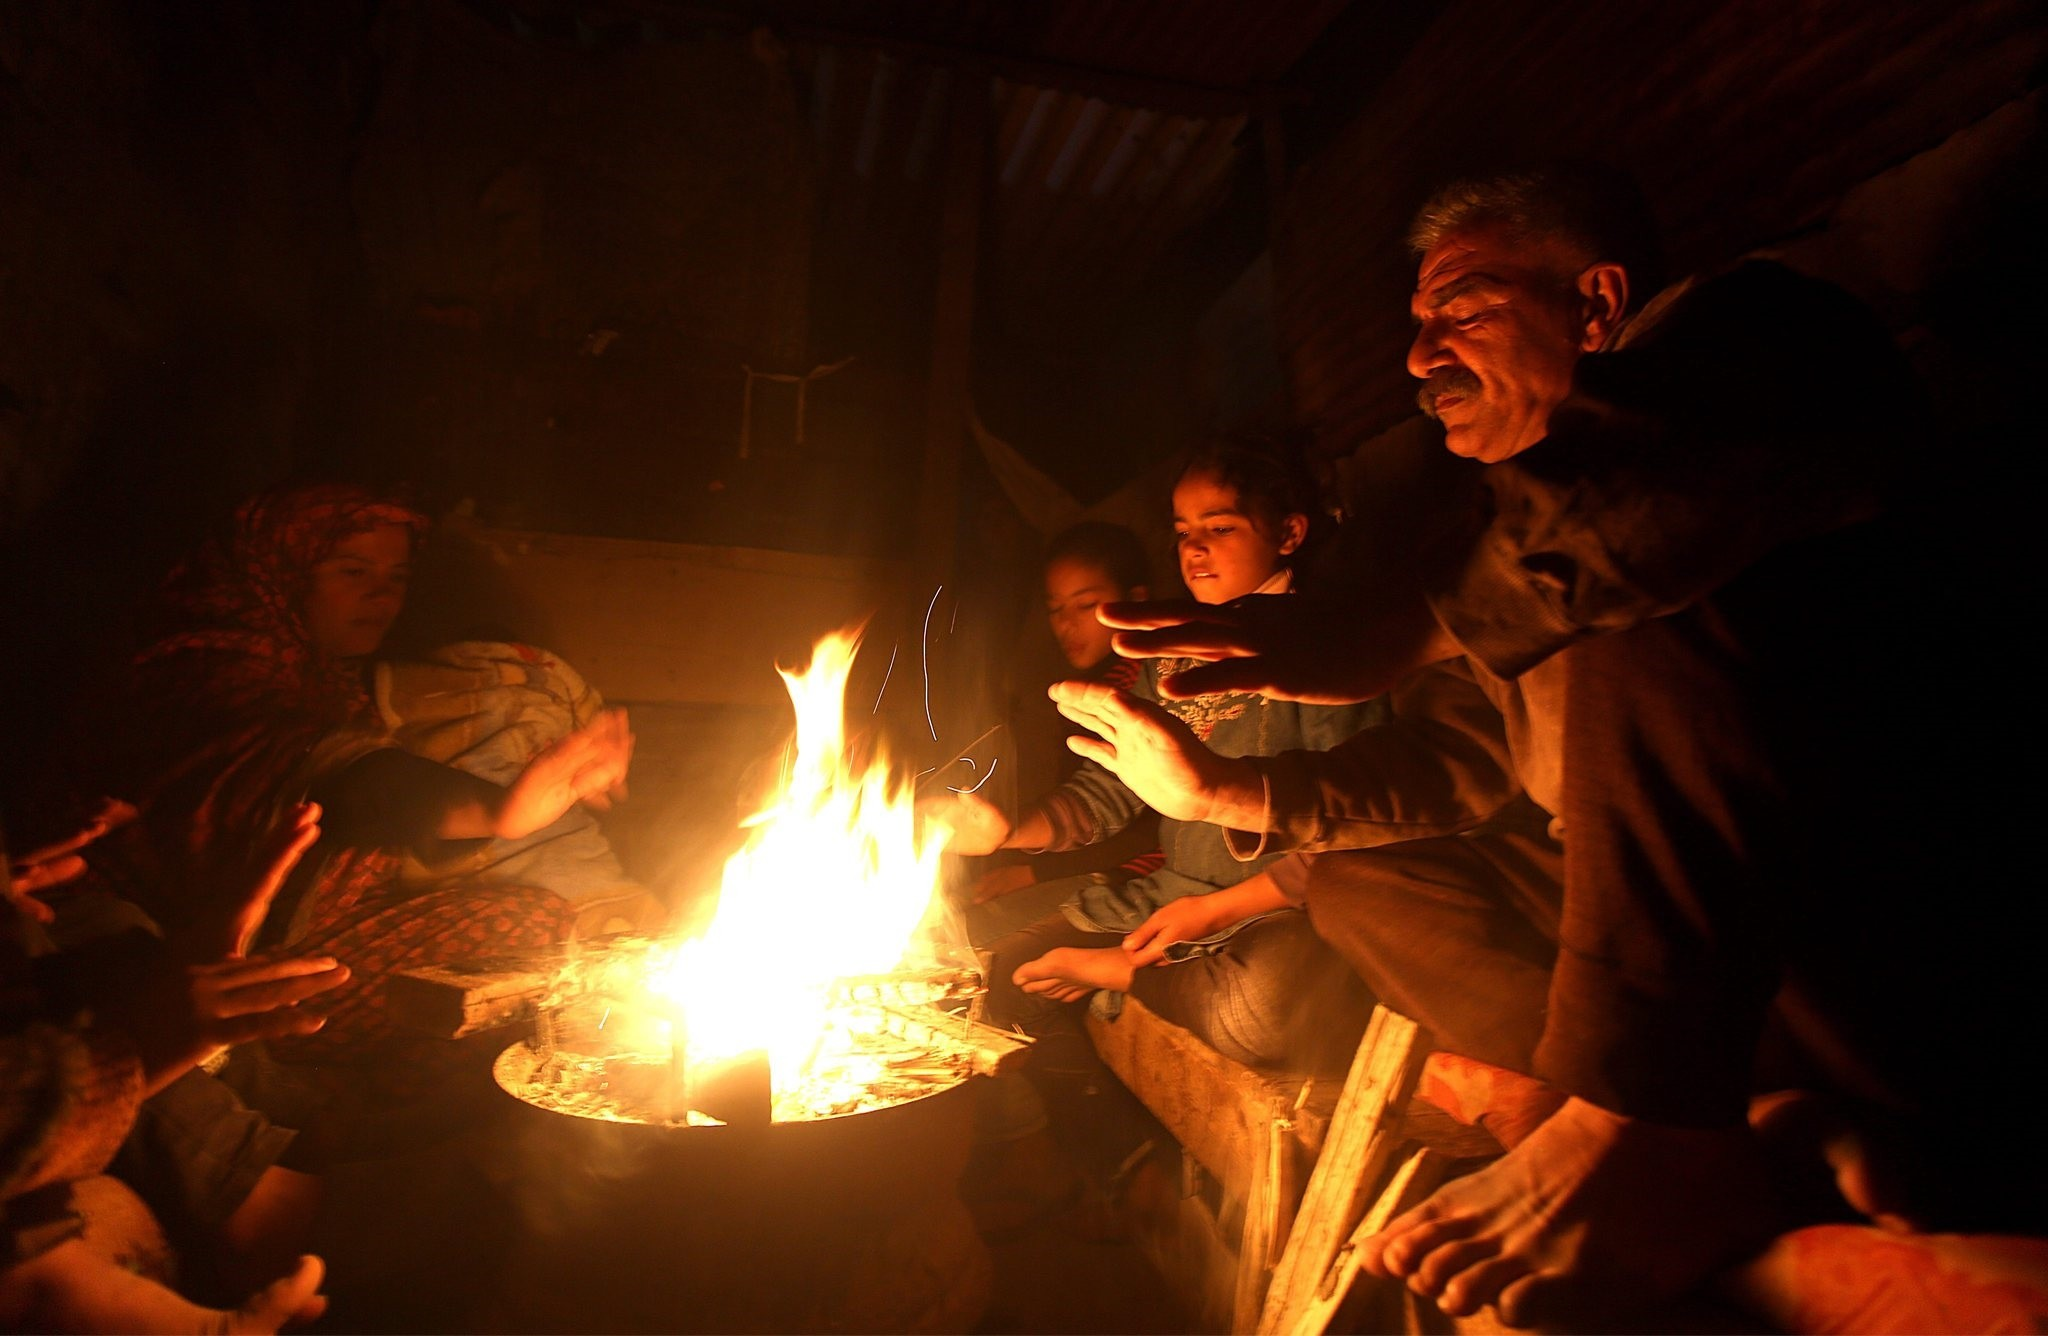 Palestinians warm up in front of a fire outside their makshift house during a power outage in Al Zaitun neighbourhood in the east of Gaza City, 11 January 2017. (EPA Photo)